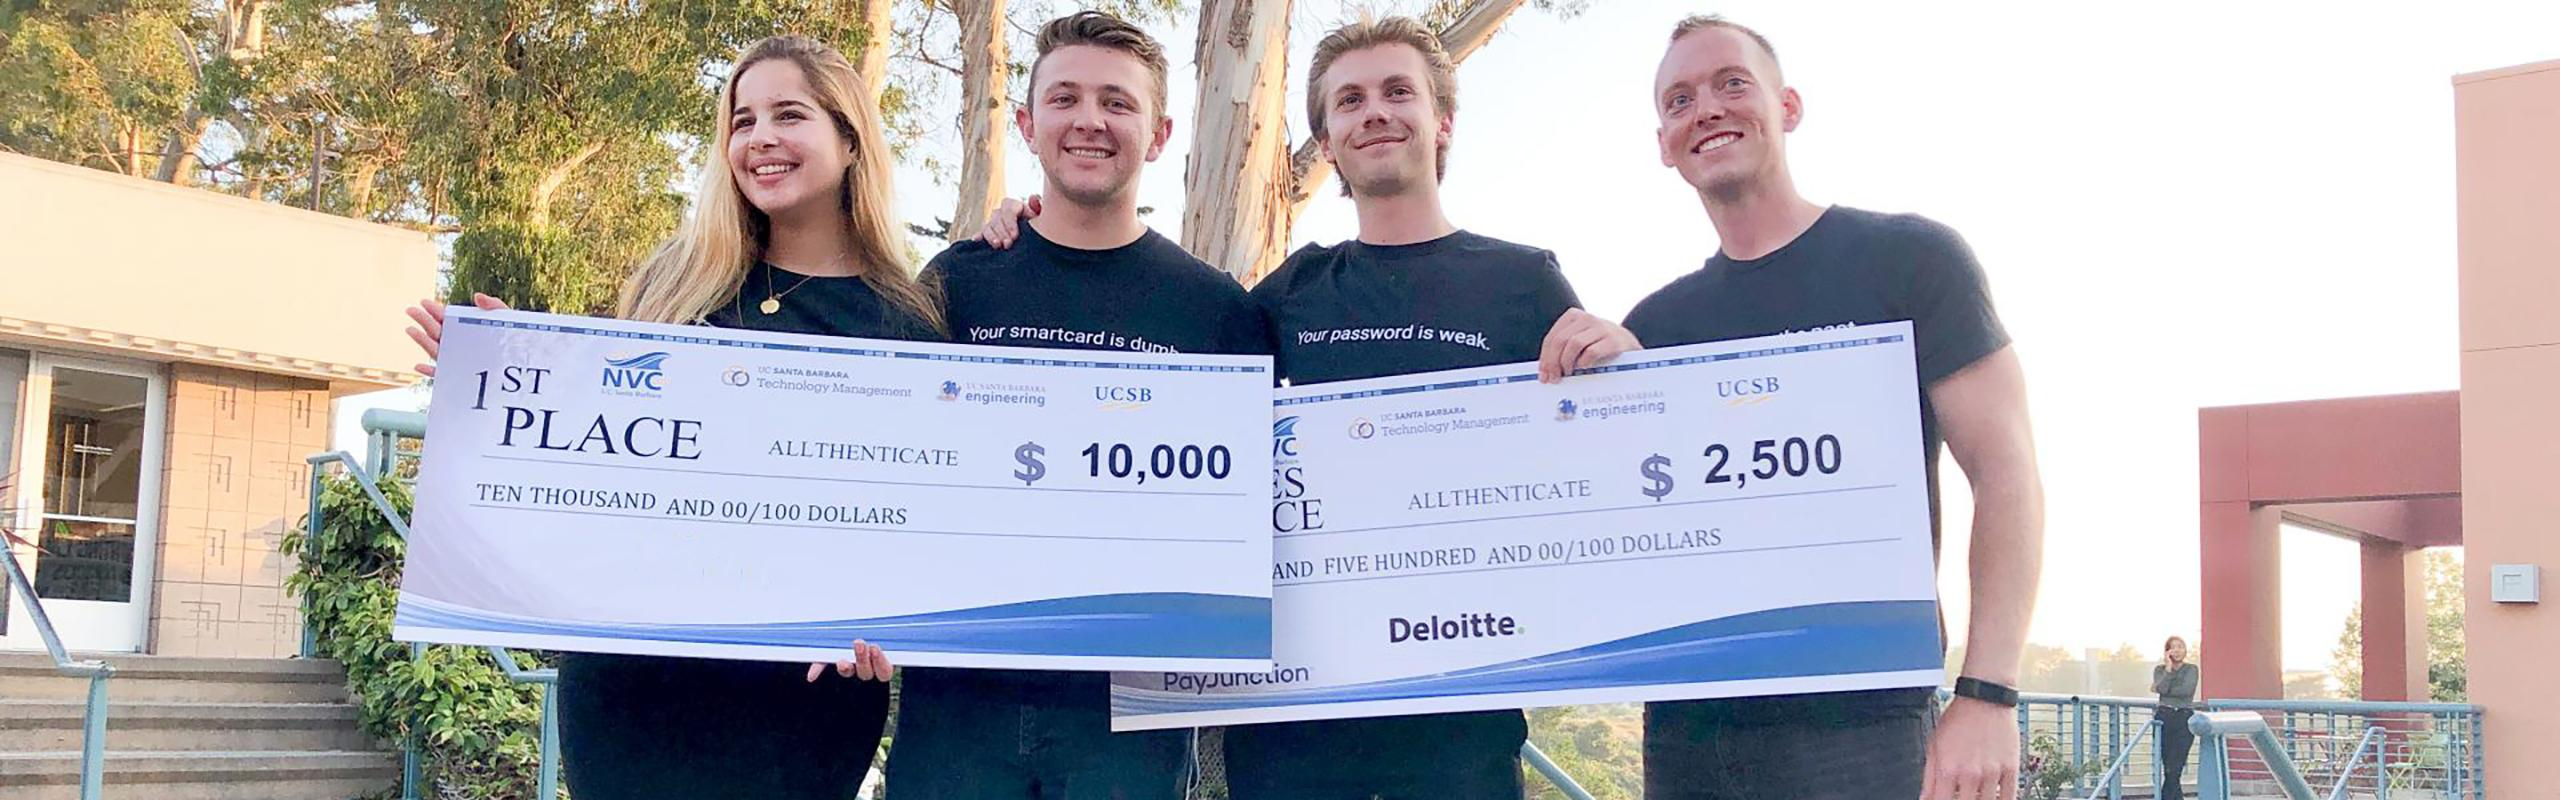 Team Allthenticate holding award checks at the 2019 New Venture Competition at UCSB